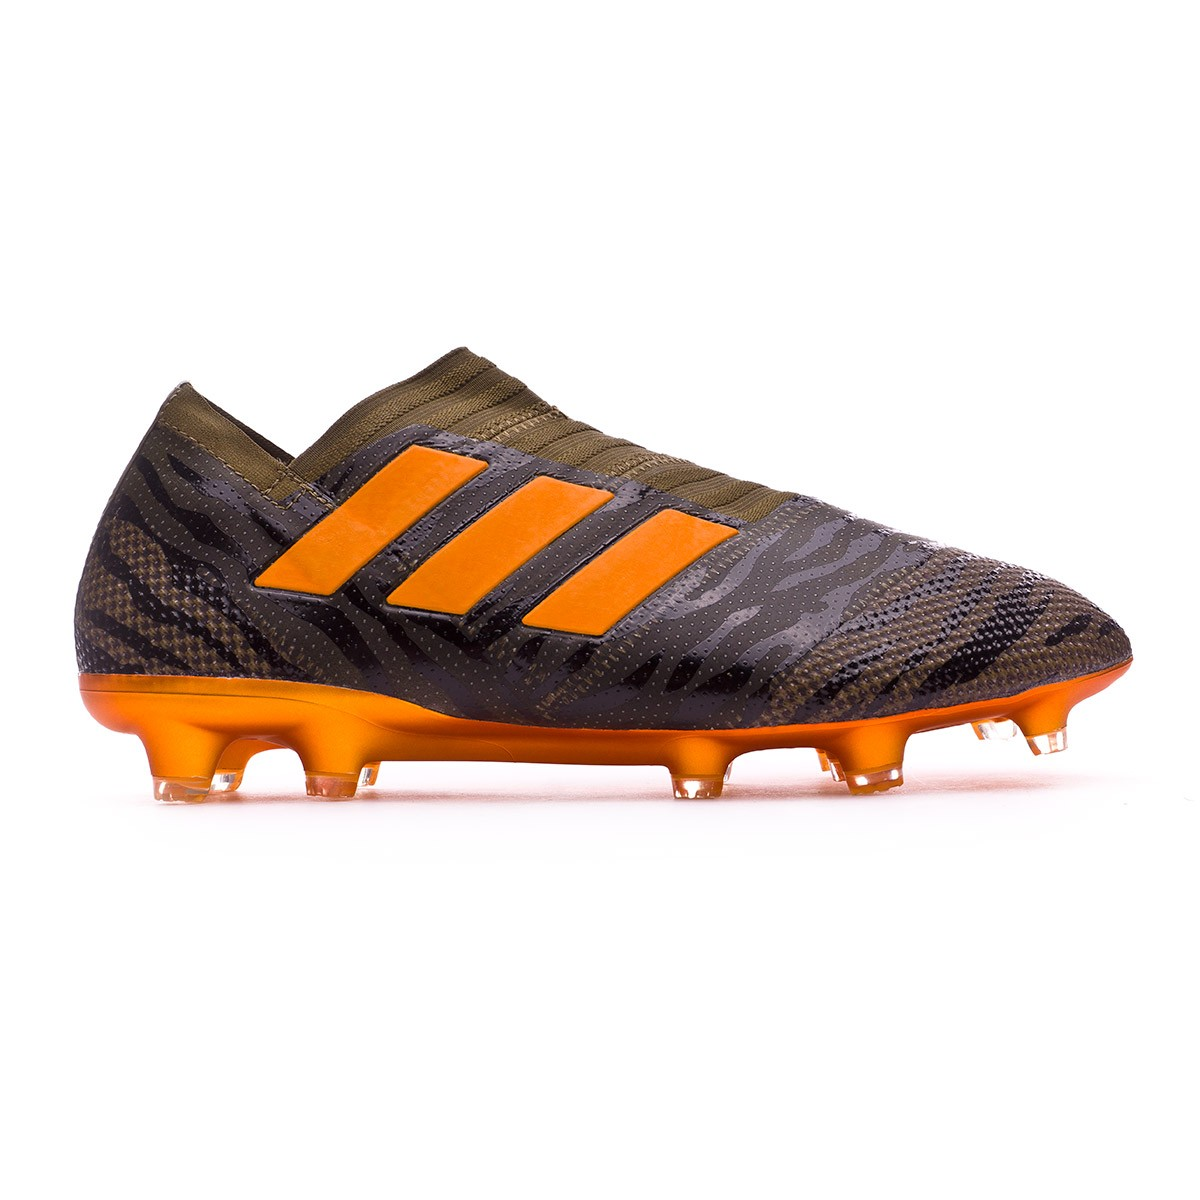 huge discount 76cc8 11578 Football Boots adidas Nemeziz 17+ 360 Agility FG Trace olive-Bright  orange-Core black - Tienda de fútbol Fútbol Emotion